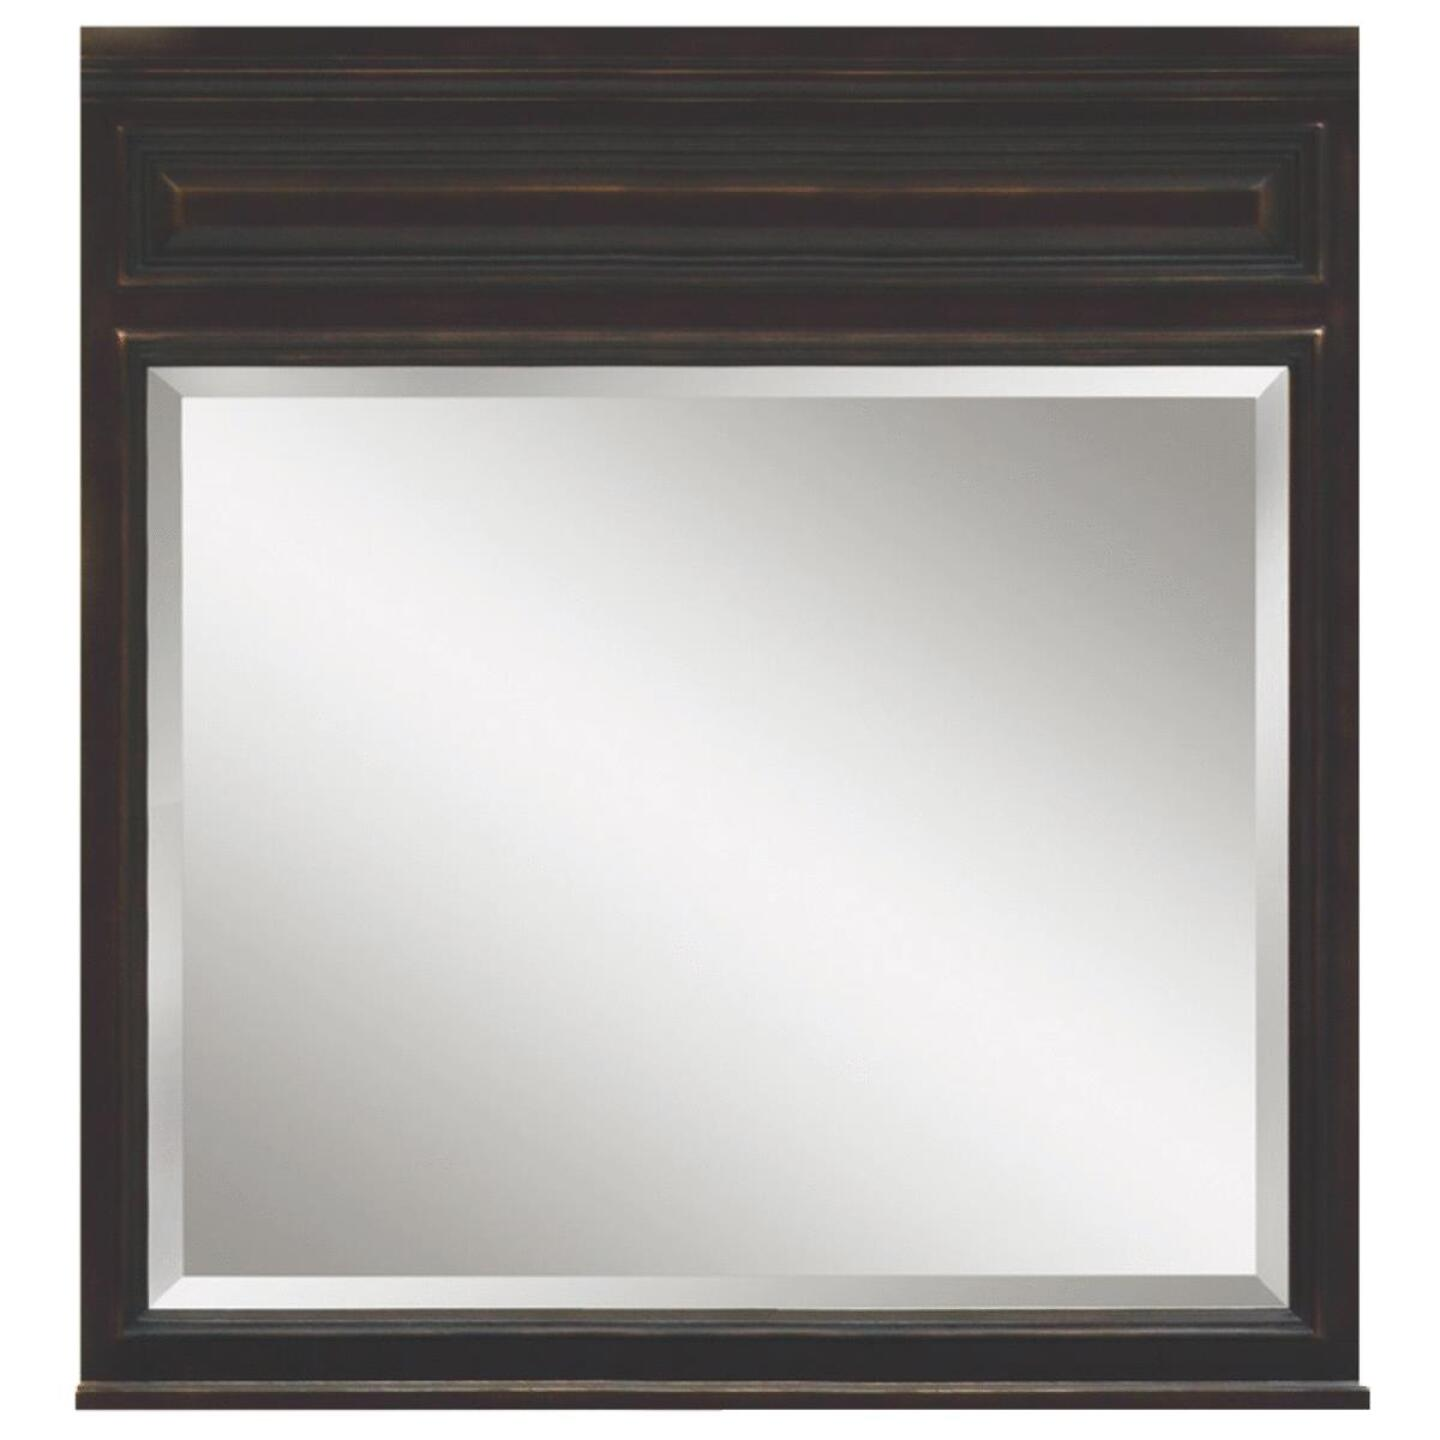 Sunny Wood Barton Hill Black Onyx 36 In. W x 38 In. H Vanity Mirror Image 1